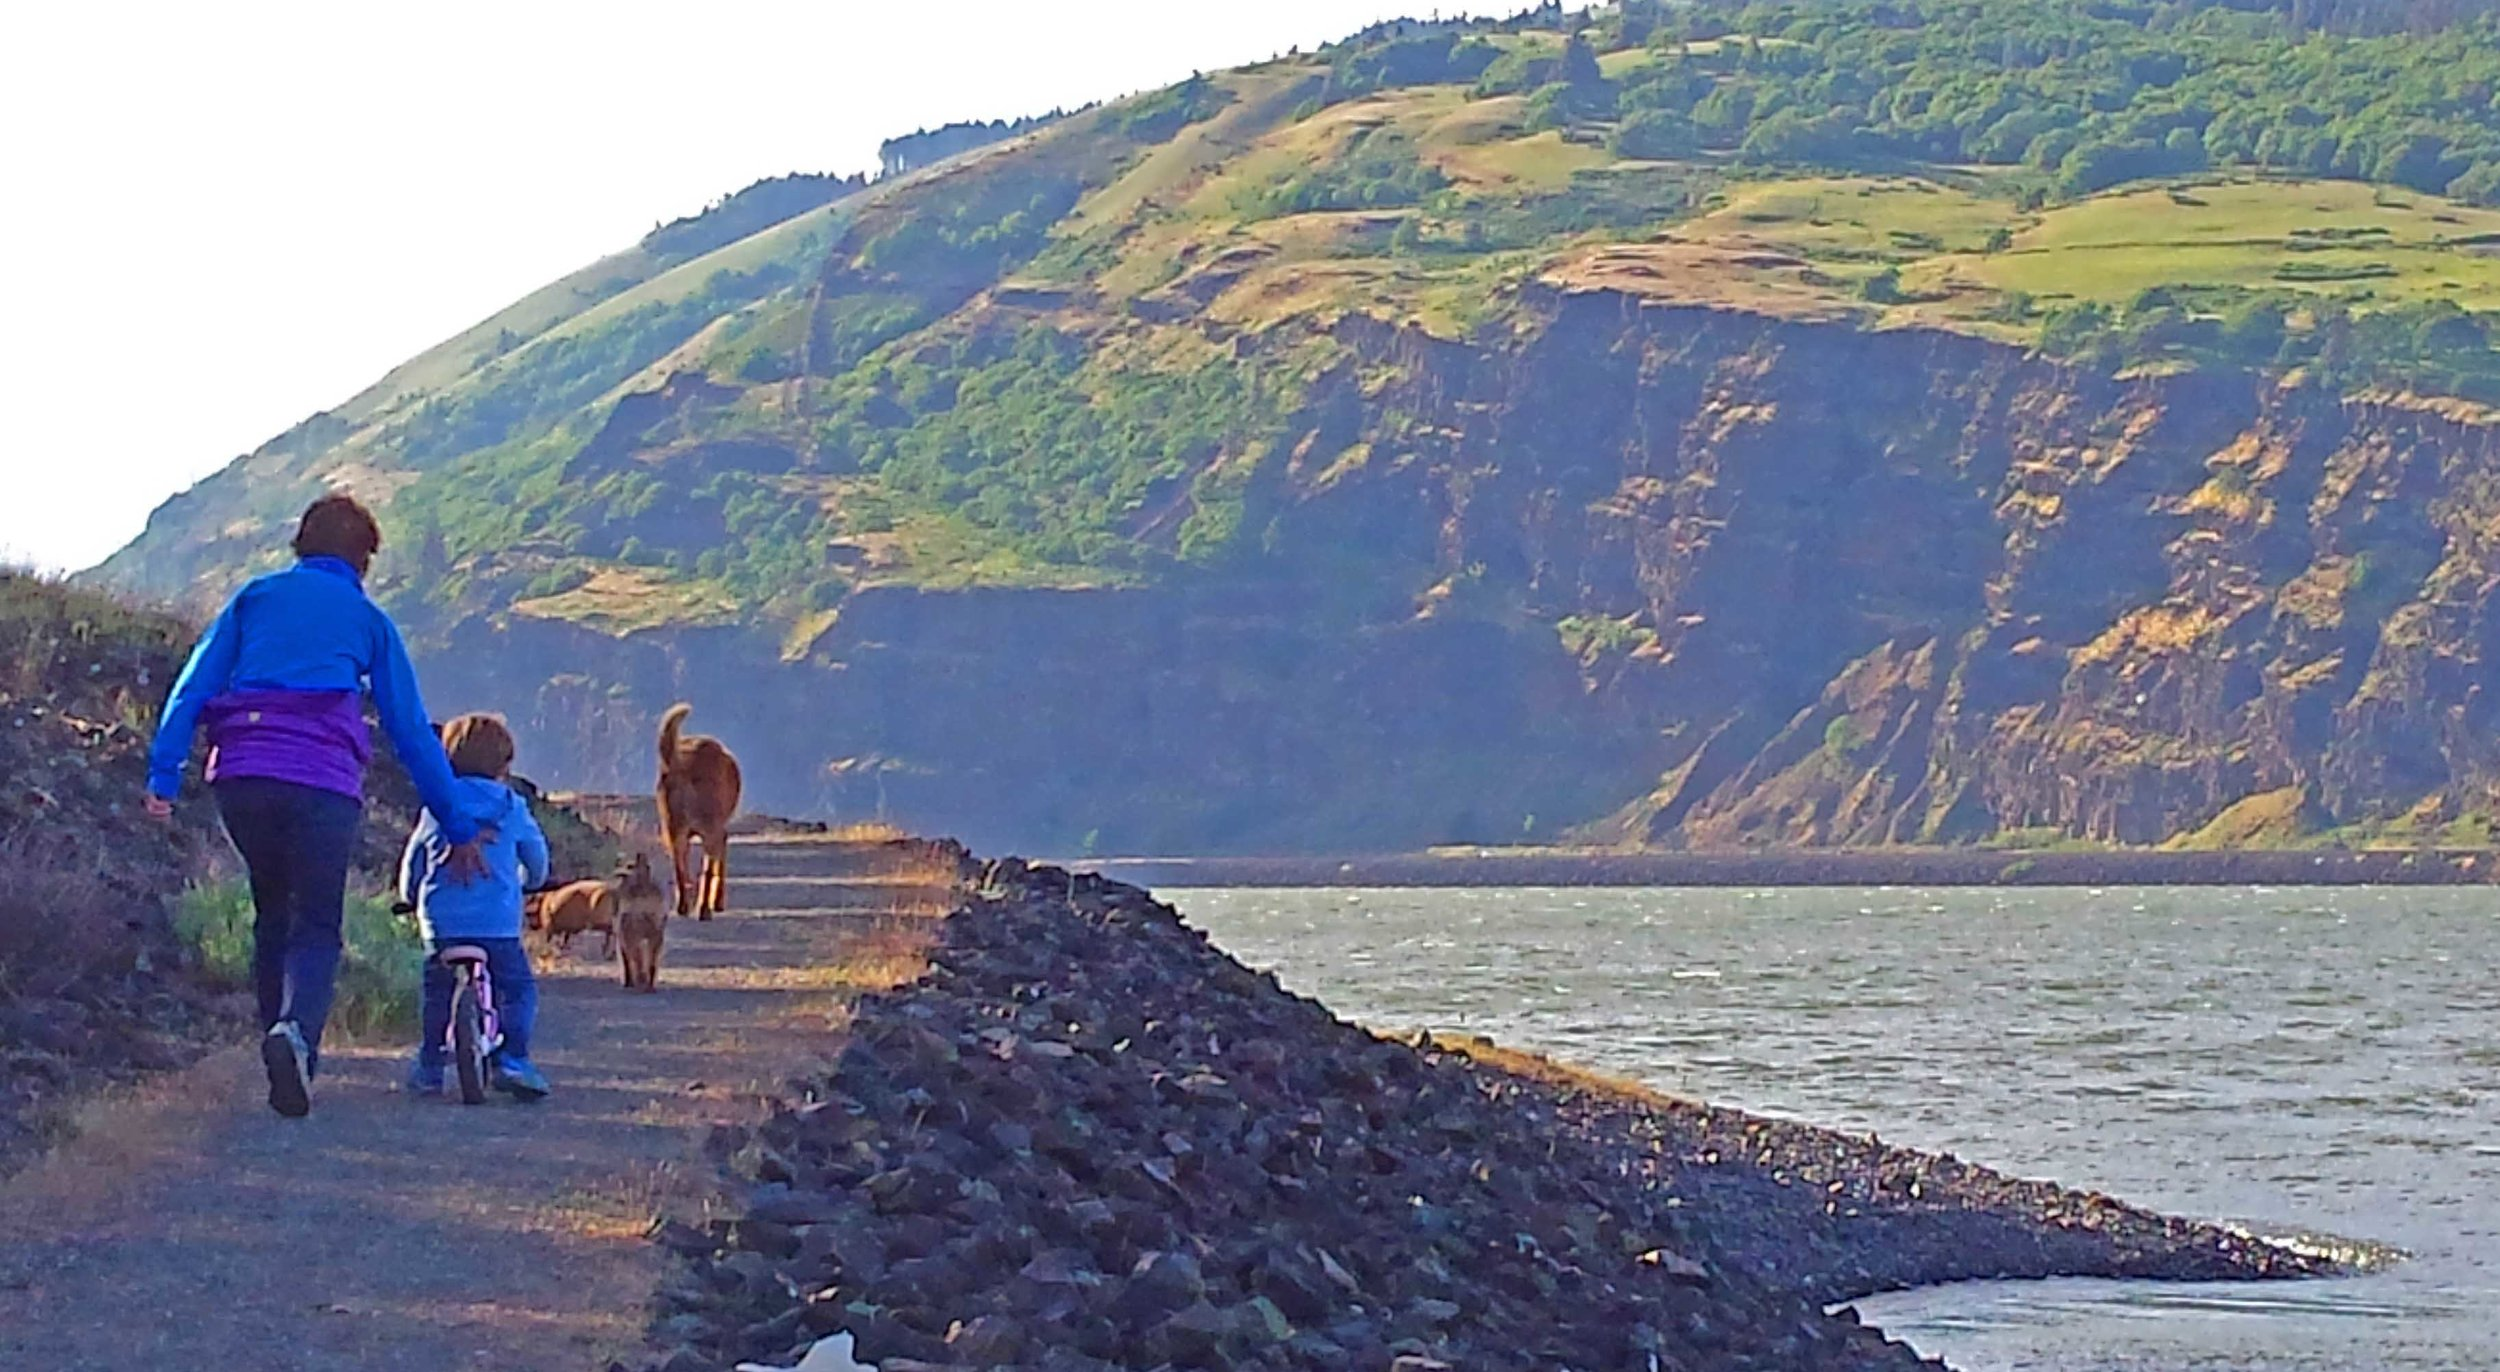 Mosier on a normal day.         Photo: Barb Ayers, DogDiary.org